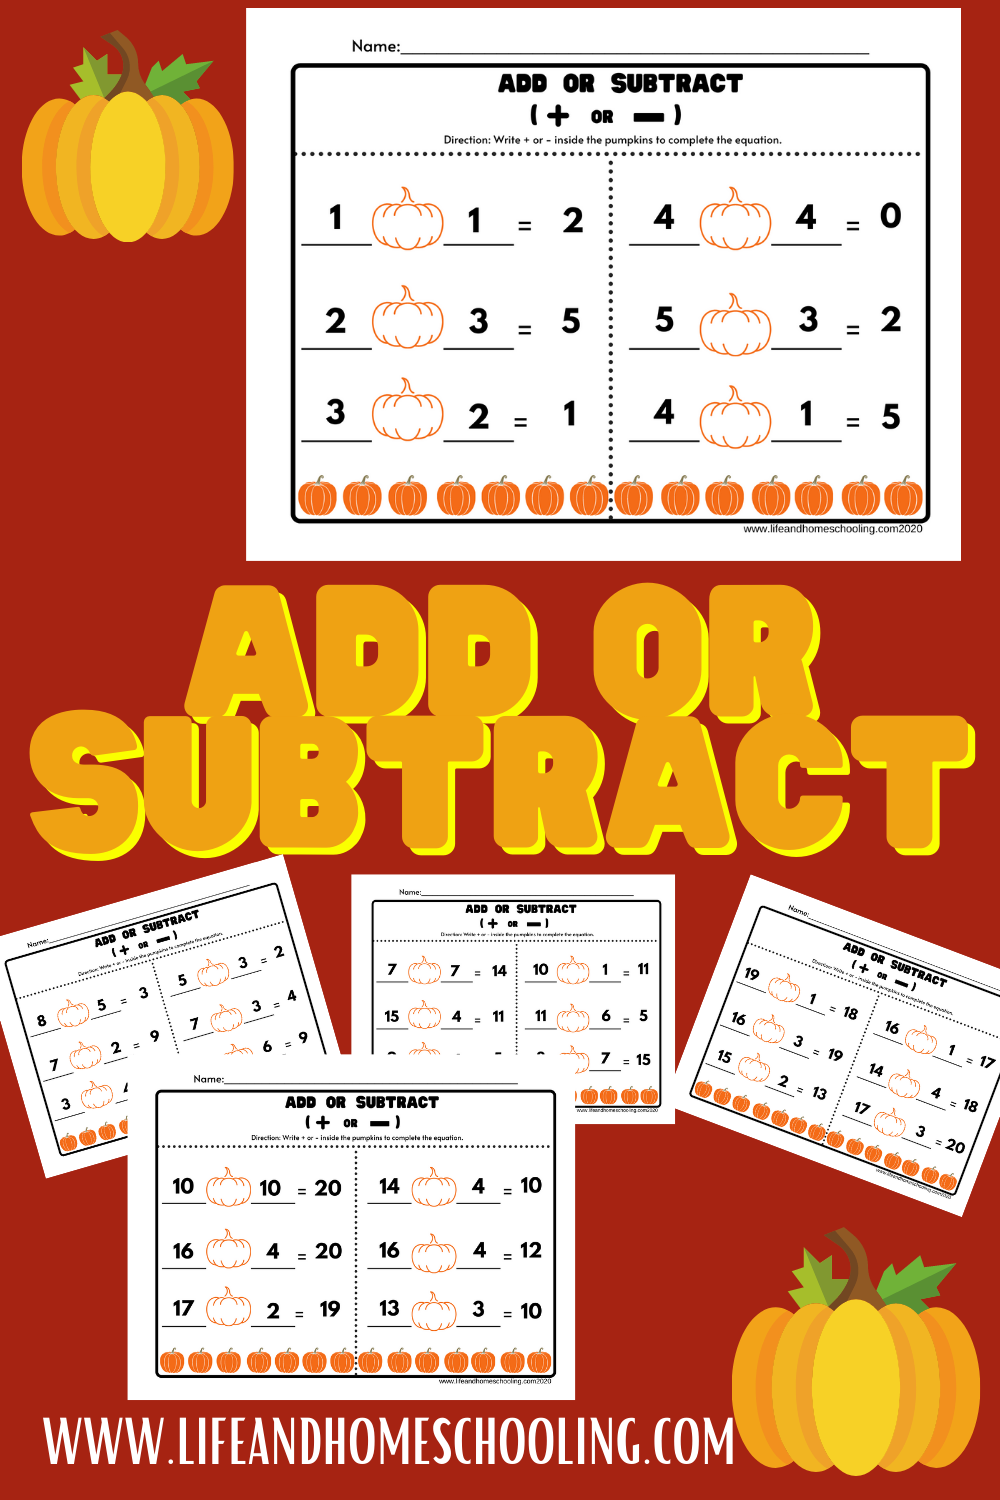 Free add or subtract printable worksheets / life and homeschooling